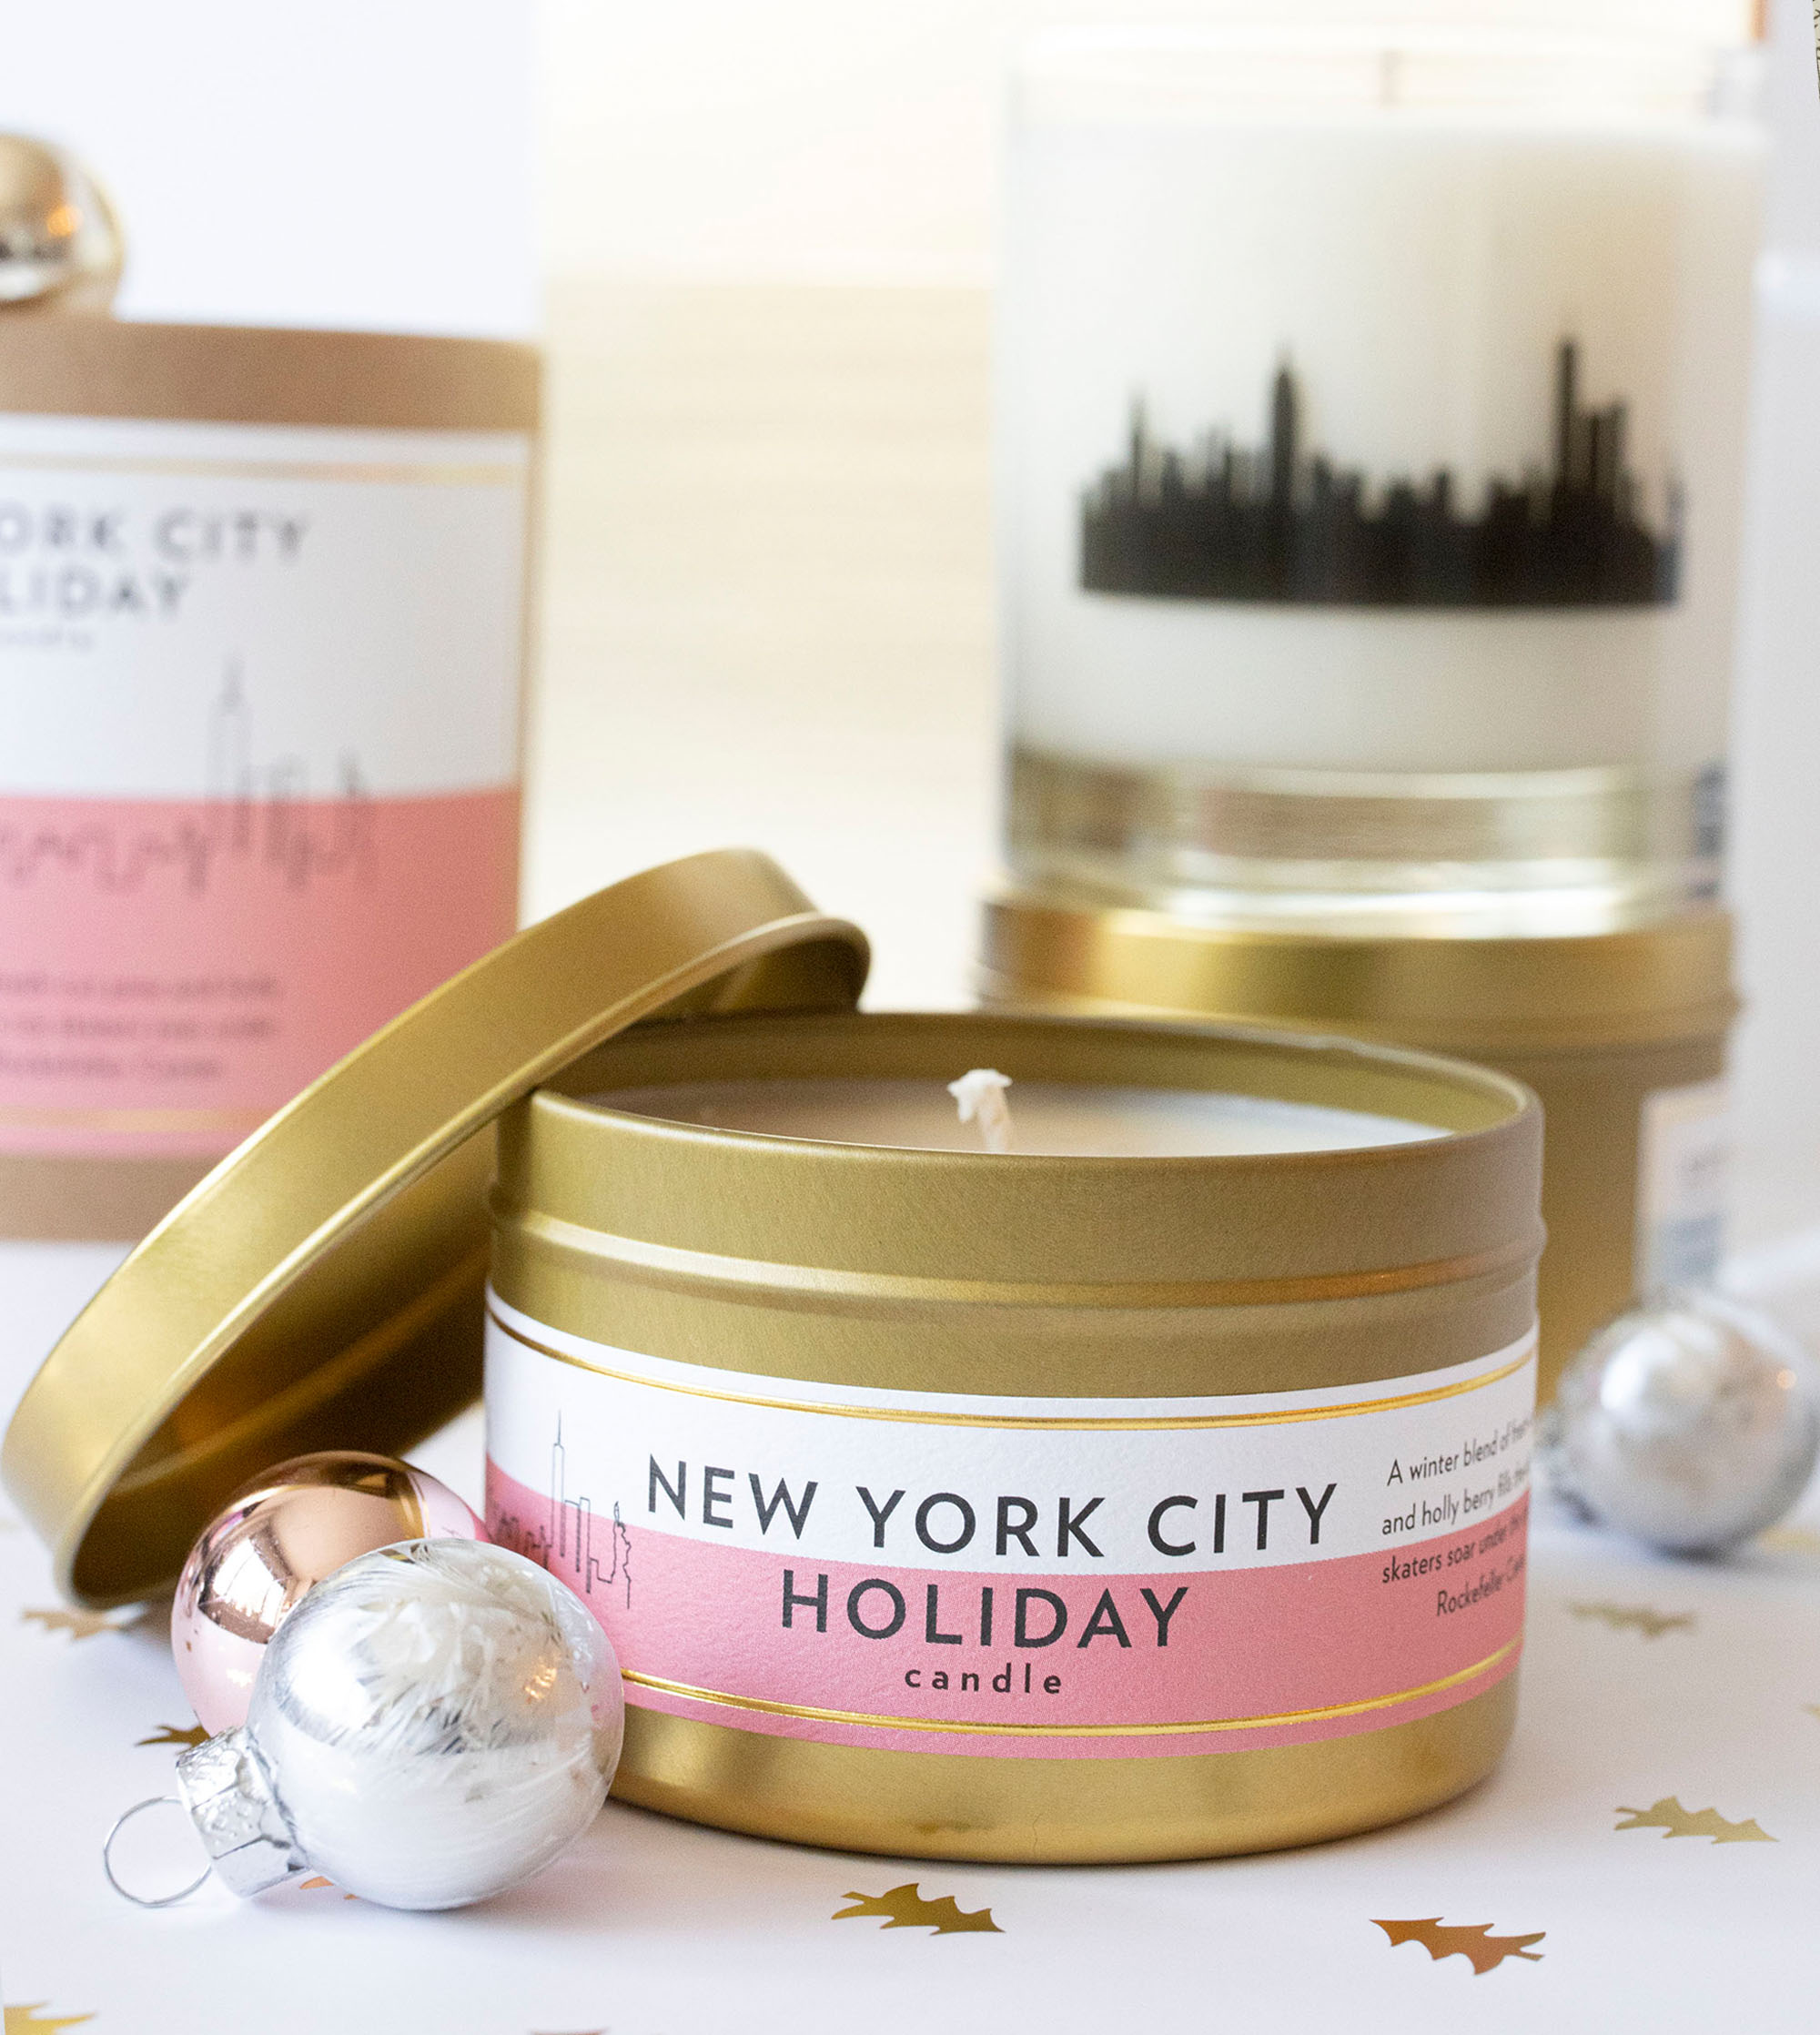 Oprah O Magazine Scripted Fragrance Best Christmas Candle New York City Holiday Candle Winter Candle